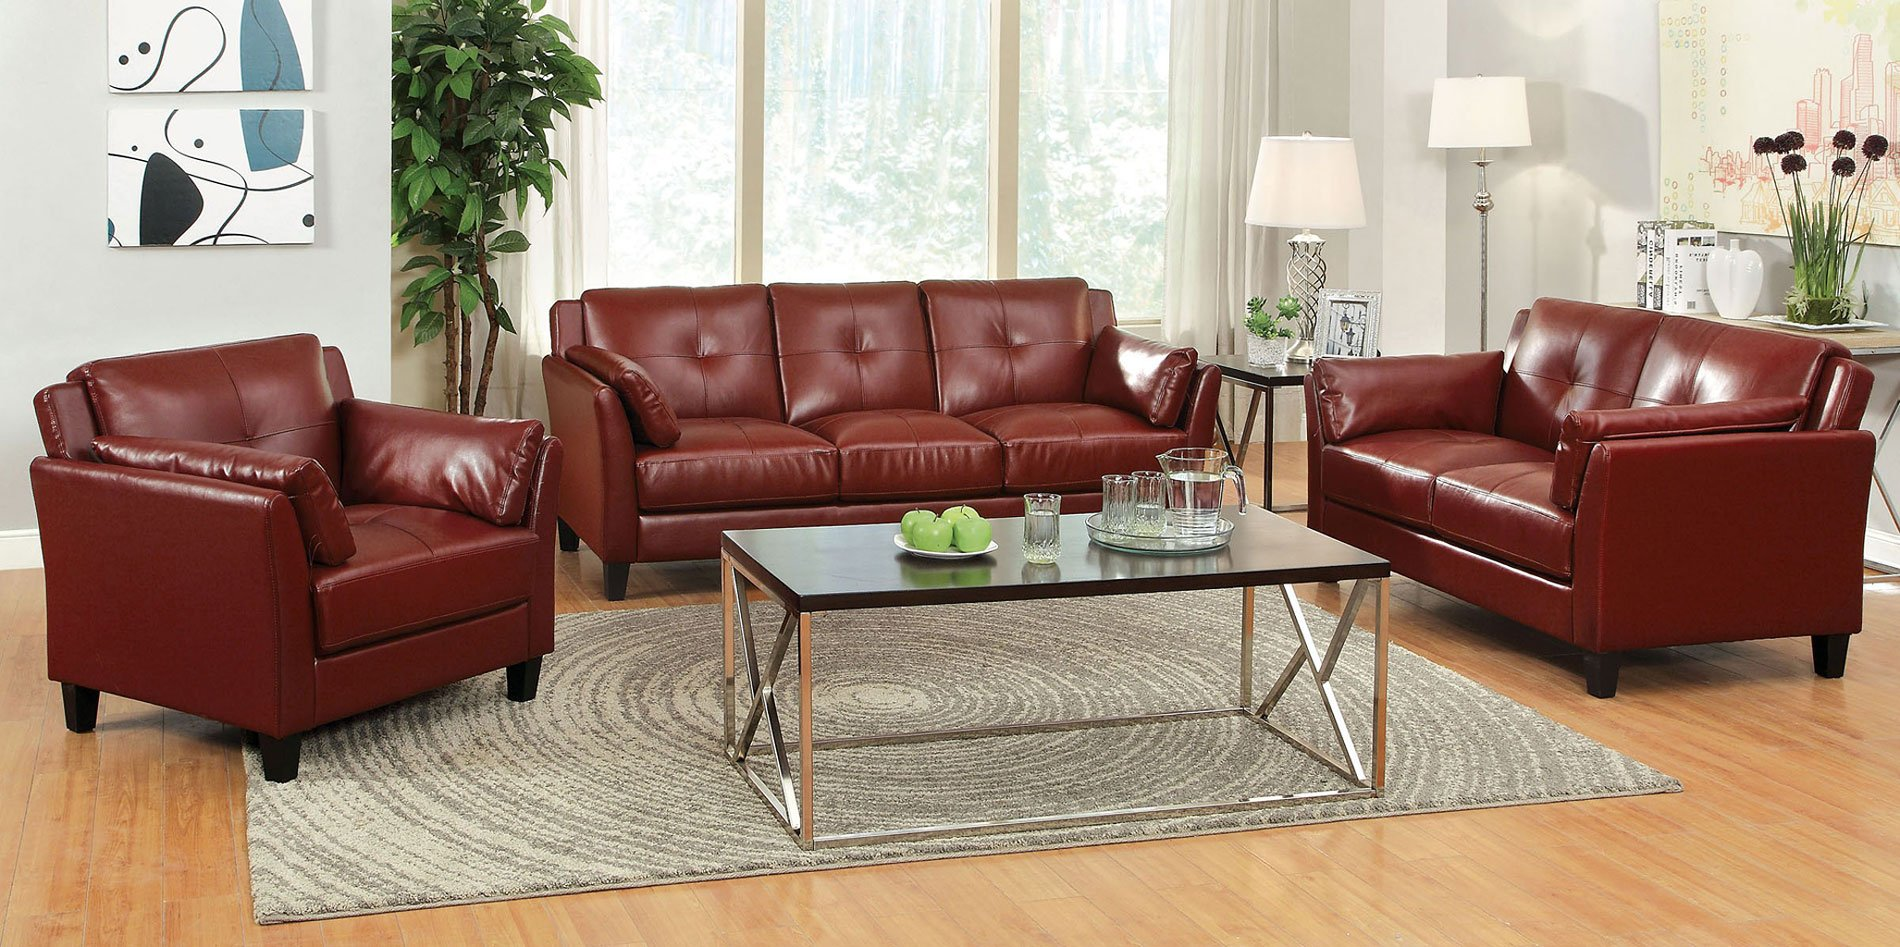 Pierre Living Room Set (Mahogany Red) by Furniture of America ...